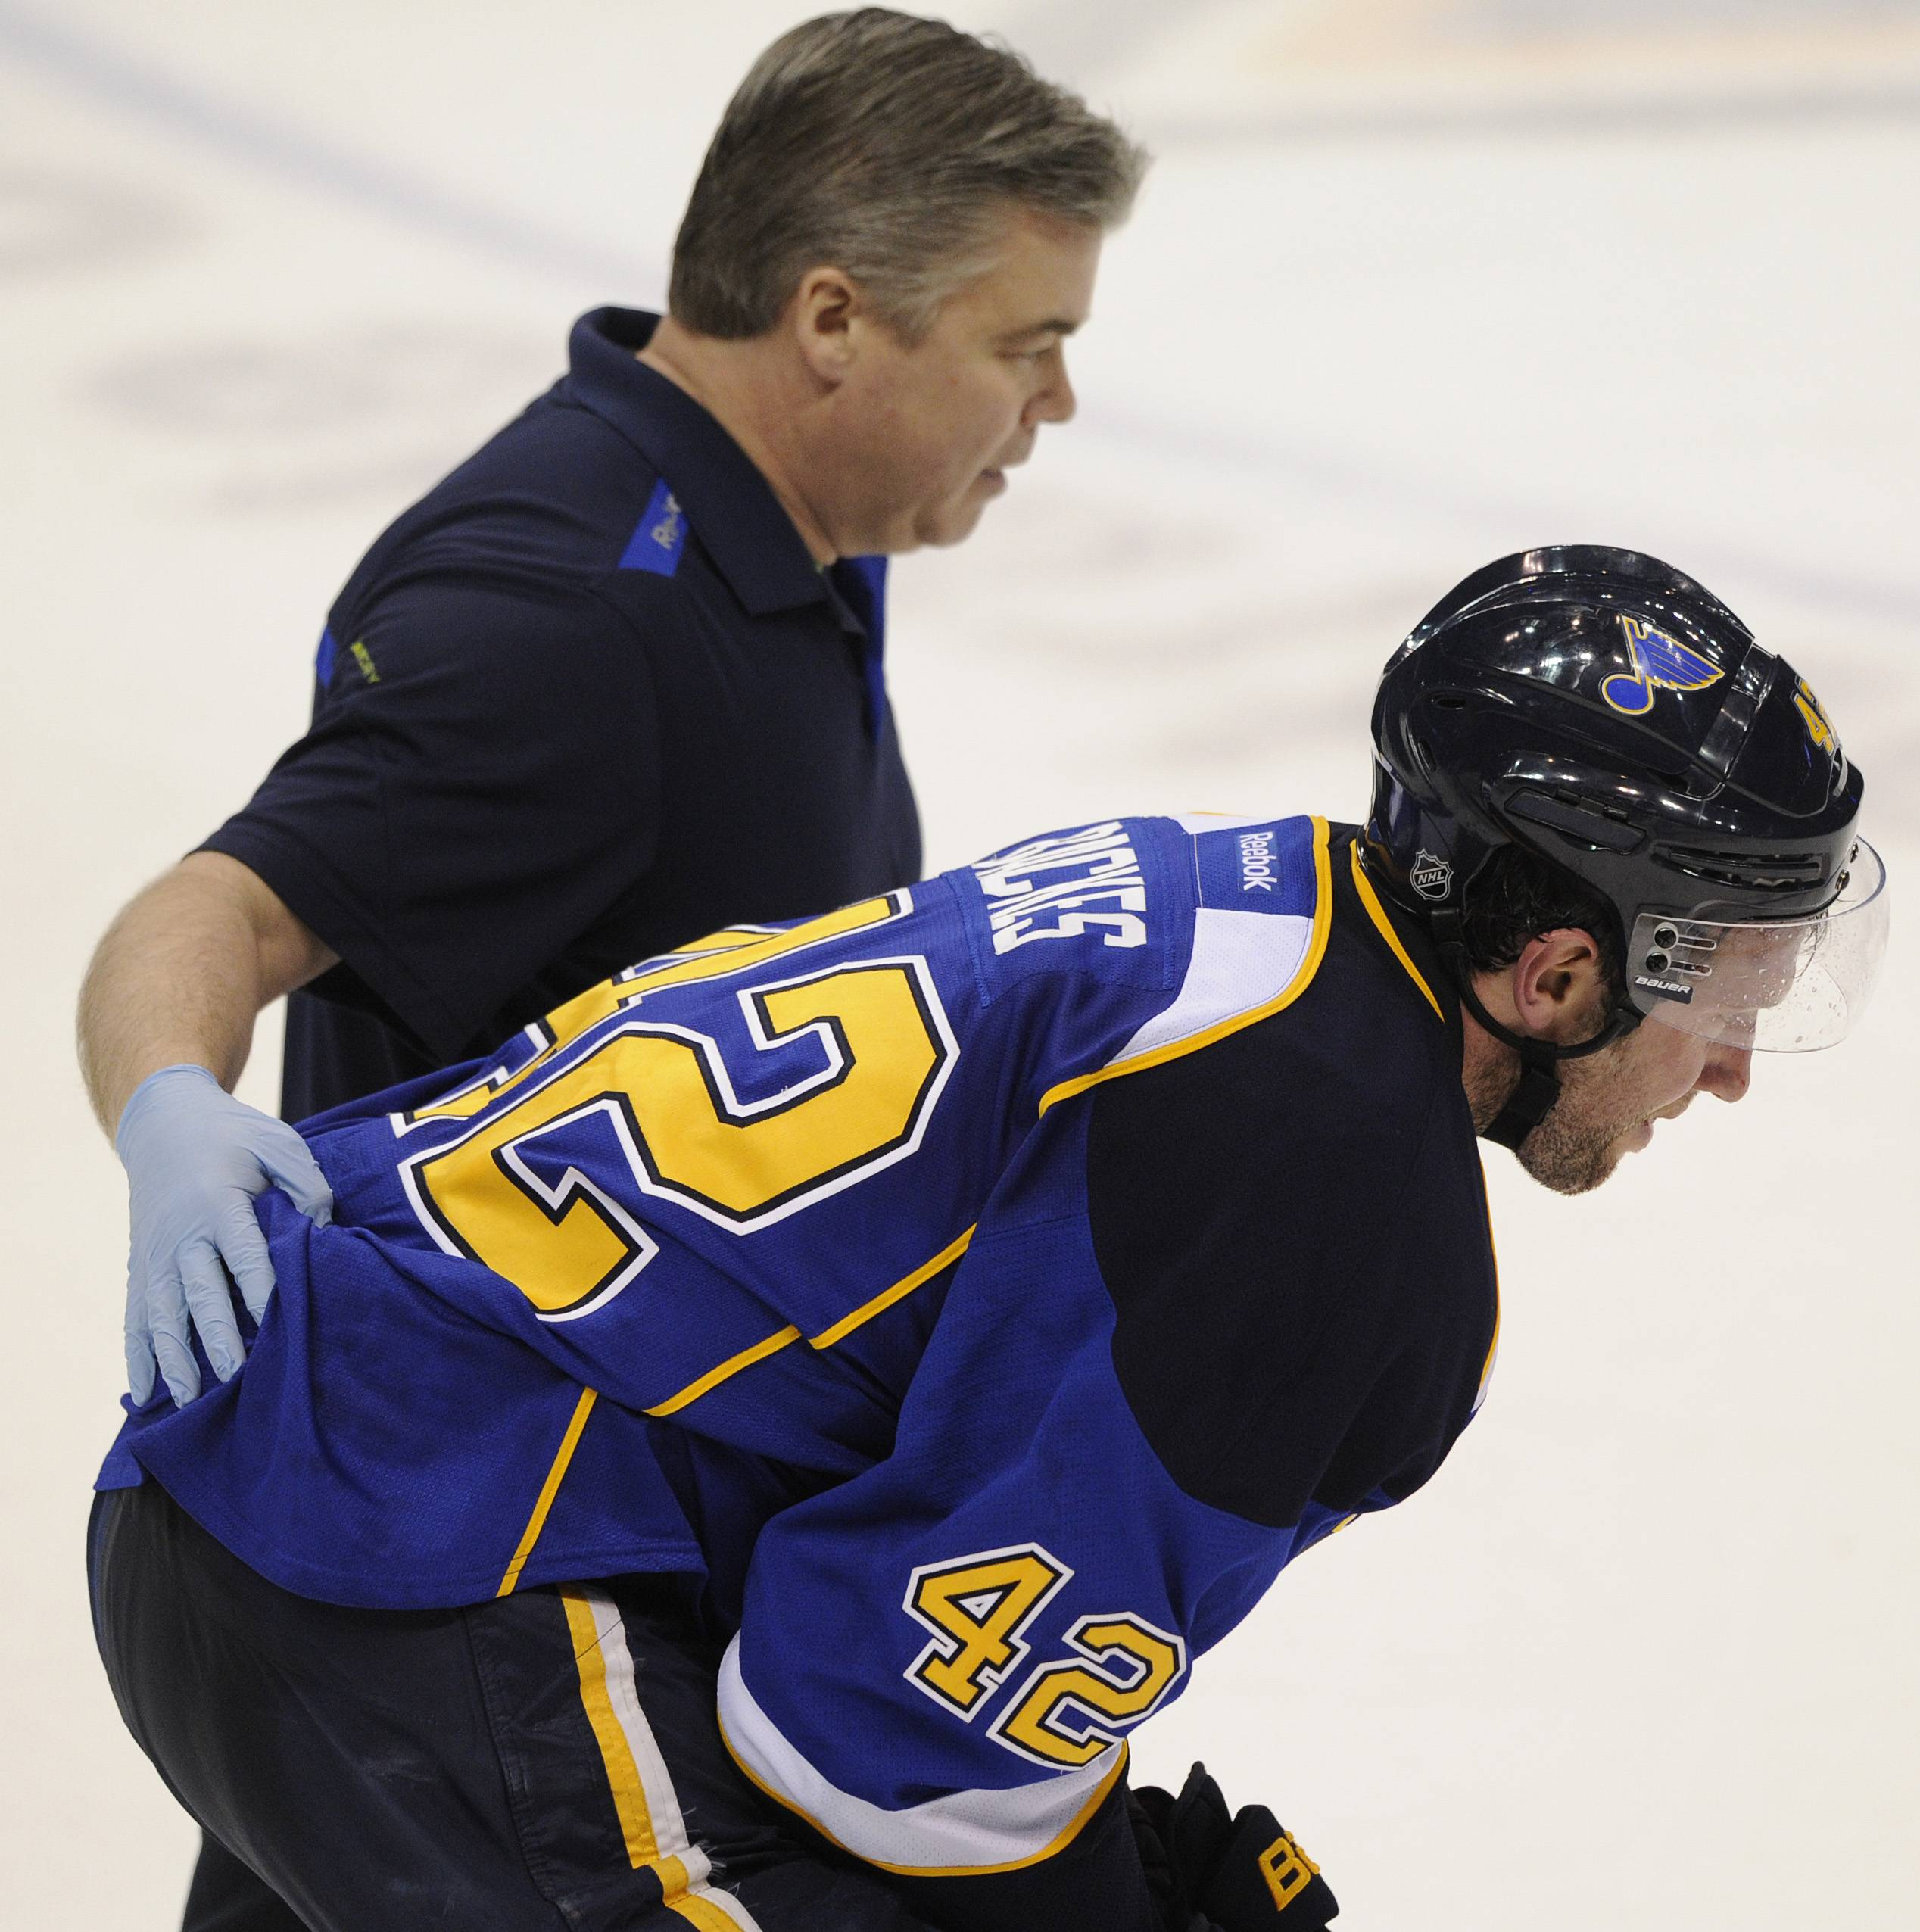 The St. Louis Blues' David Backes (42) is helped off the ice by a Blues trainer against the Chicago Blackhawks during the third period in Game 2 of a first-round NHL hockey playoff series, Saturday, April 19, 2014, in St. Louis.